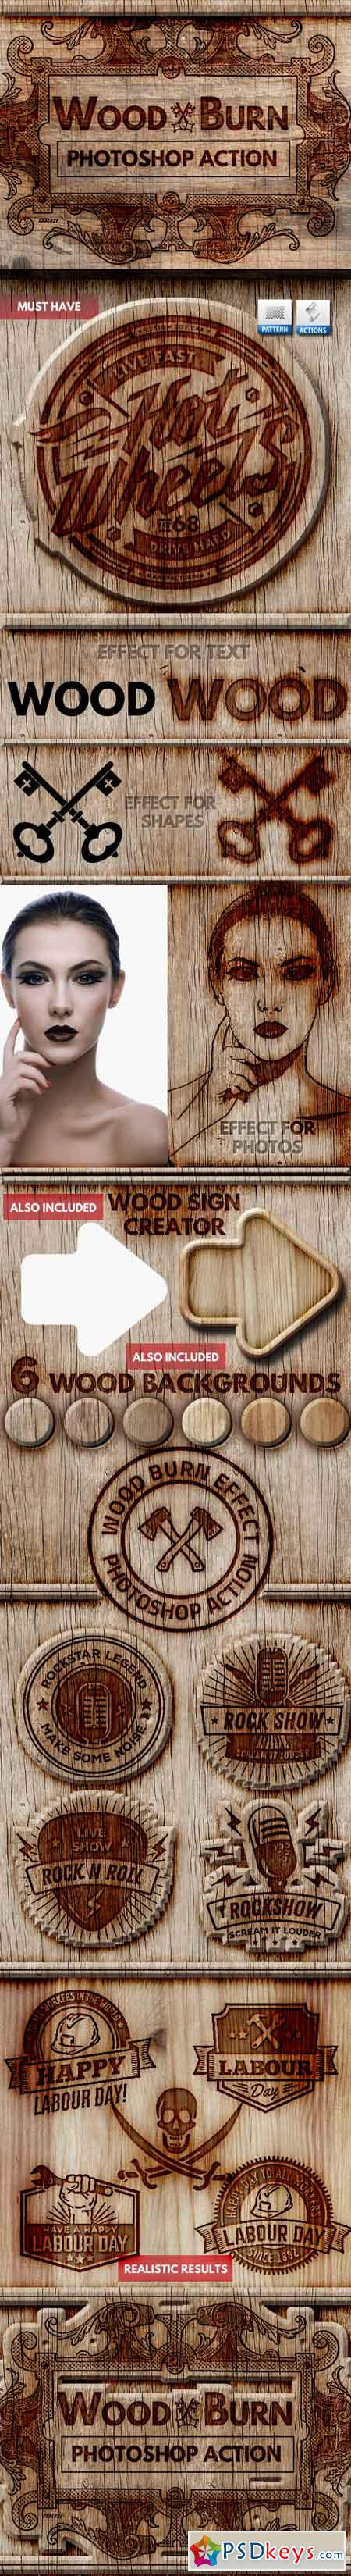 Wood Burn Effect Photoshop Action 22089411